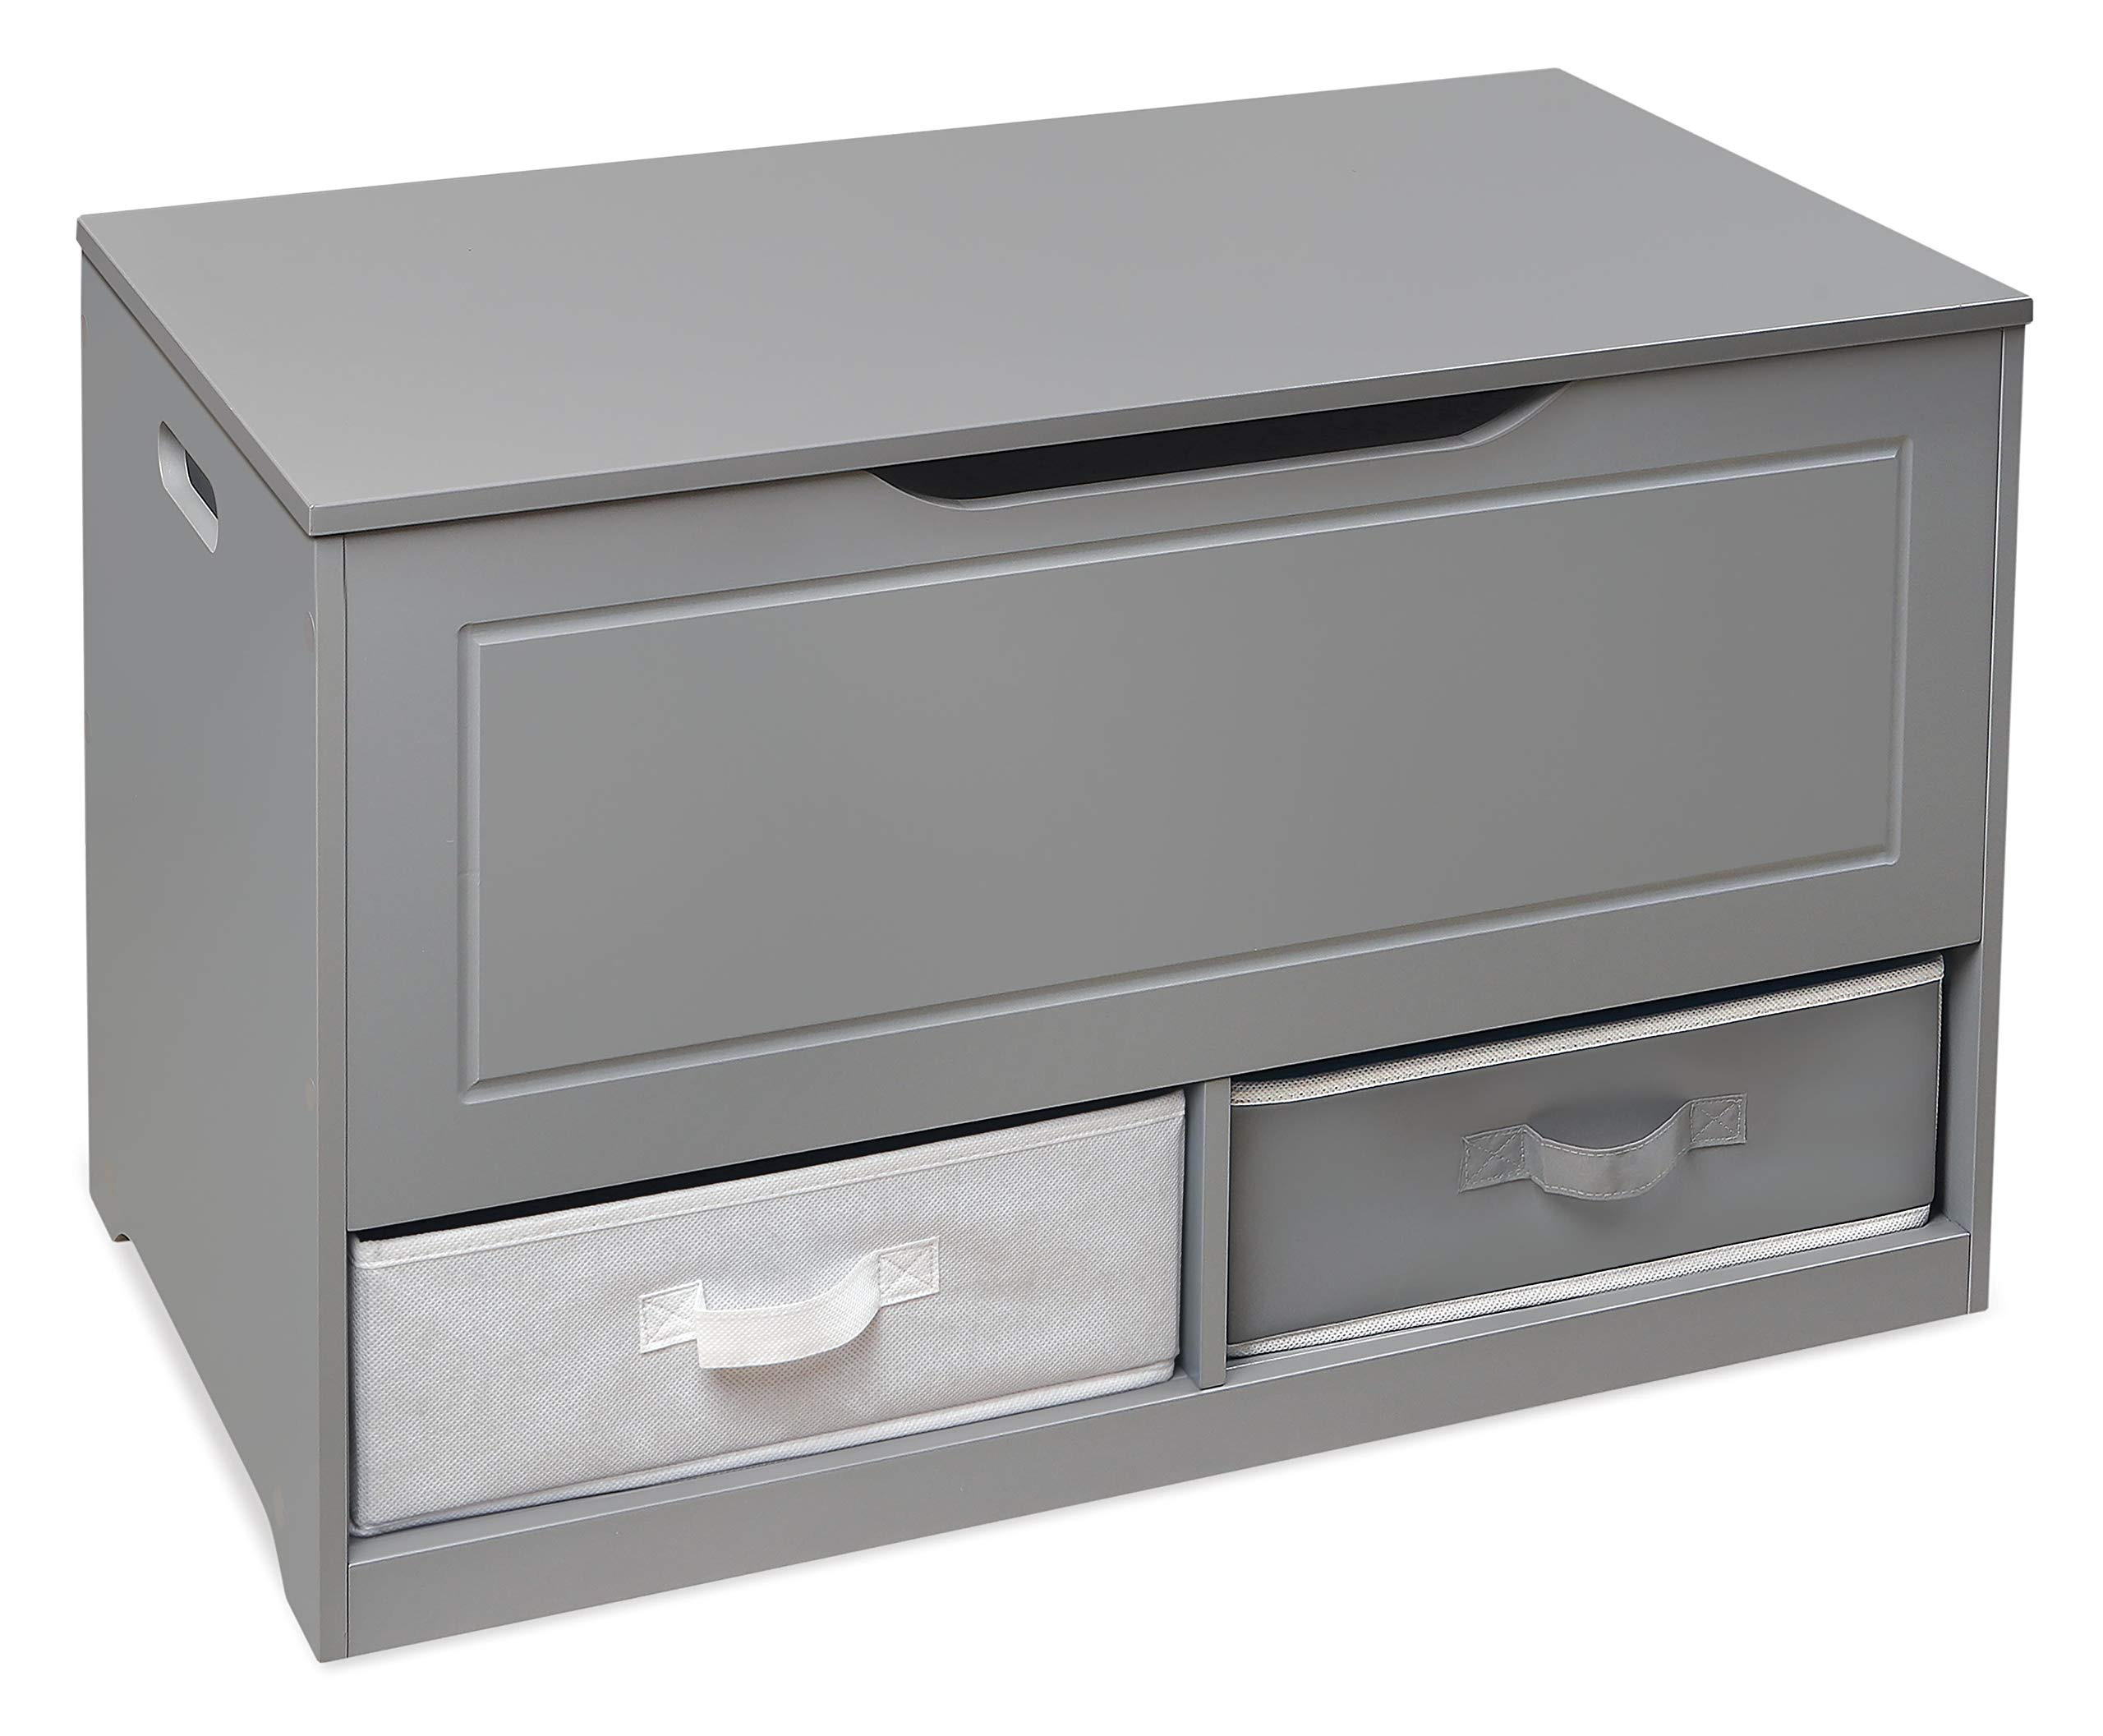 Badger Basket Up and Down Toy and Storage Box with 2 Basket Drawers, Gray/White by Badger Basket (Image #9)